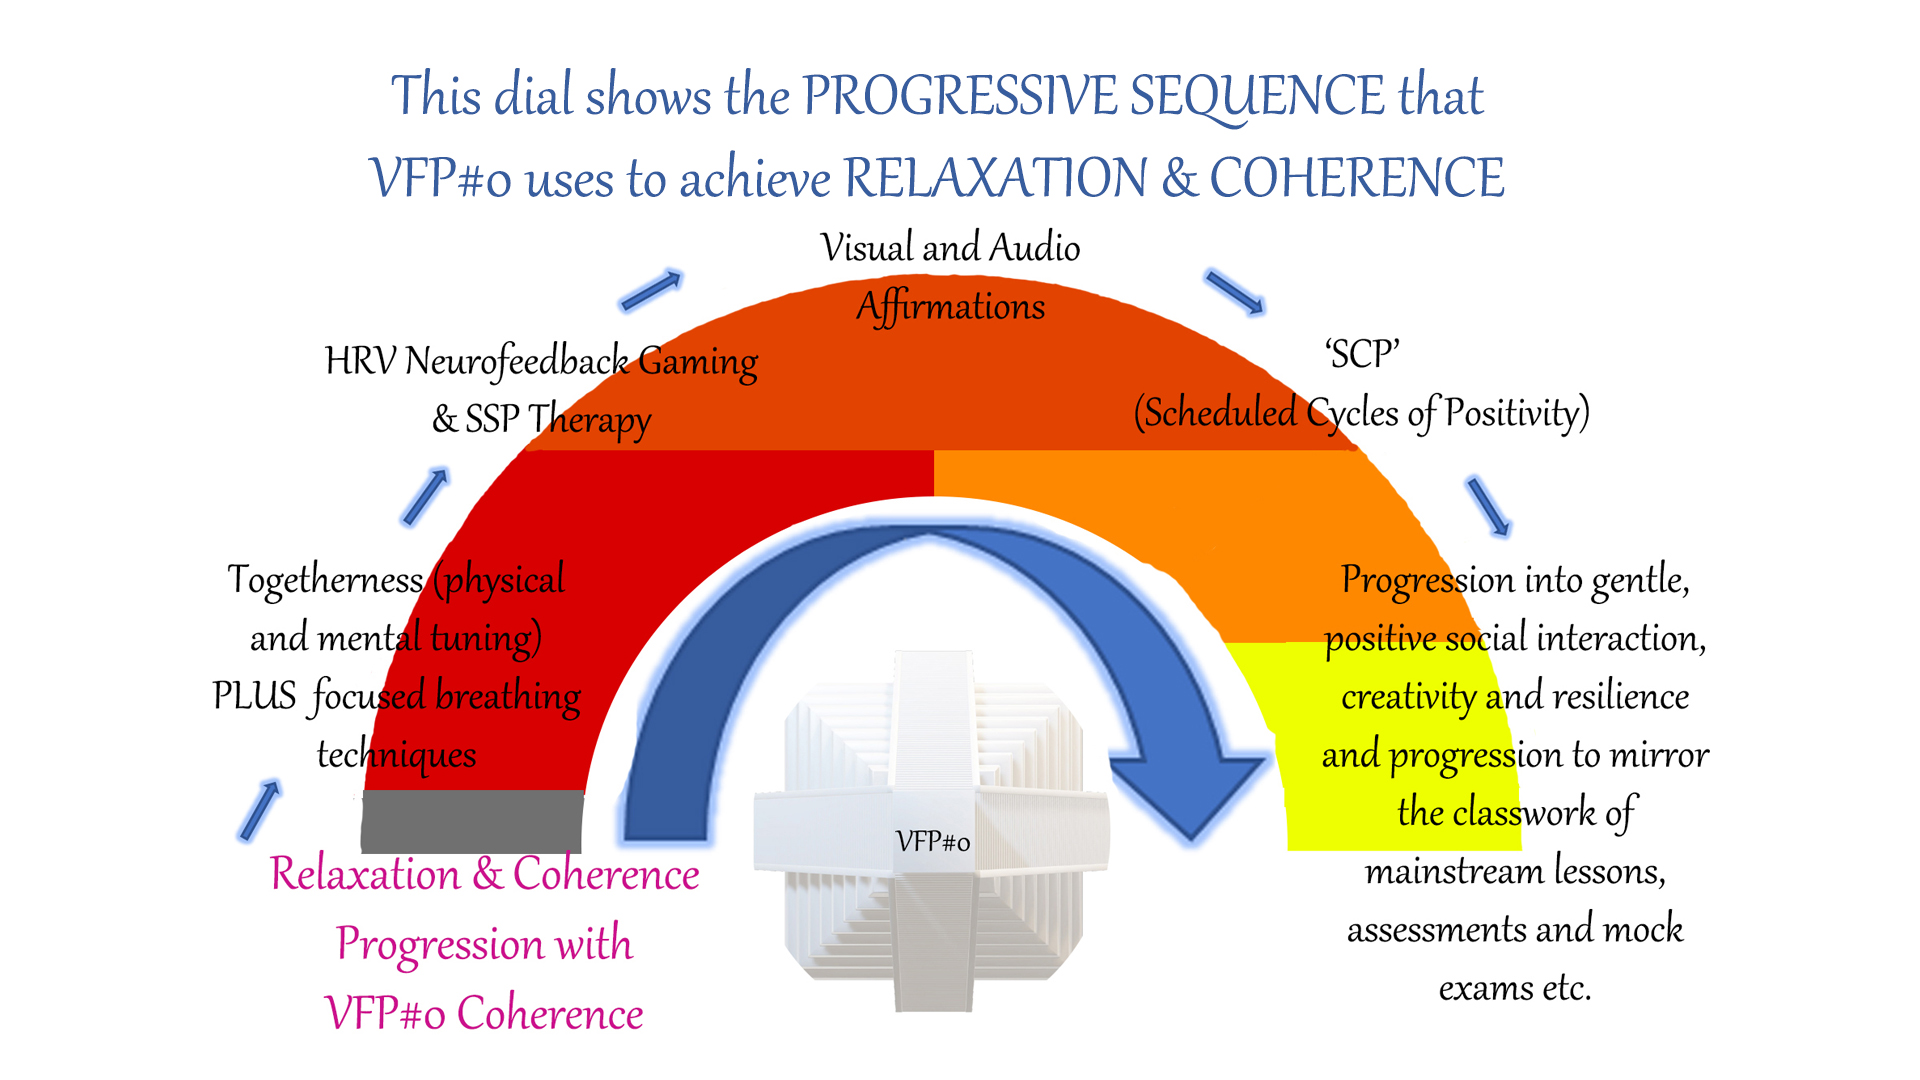 Progressive-Sequence-Relaxation-Coherence